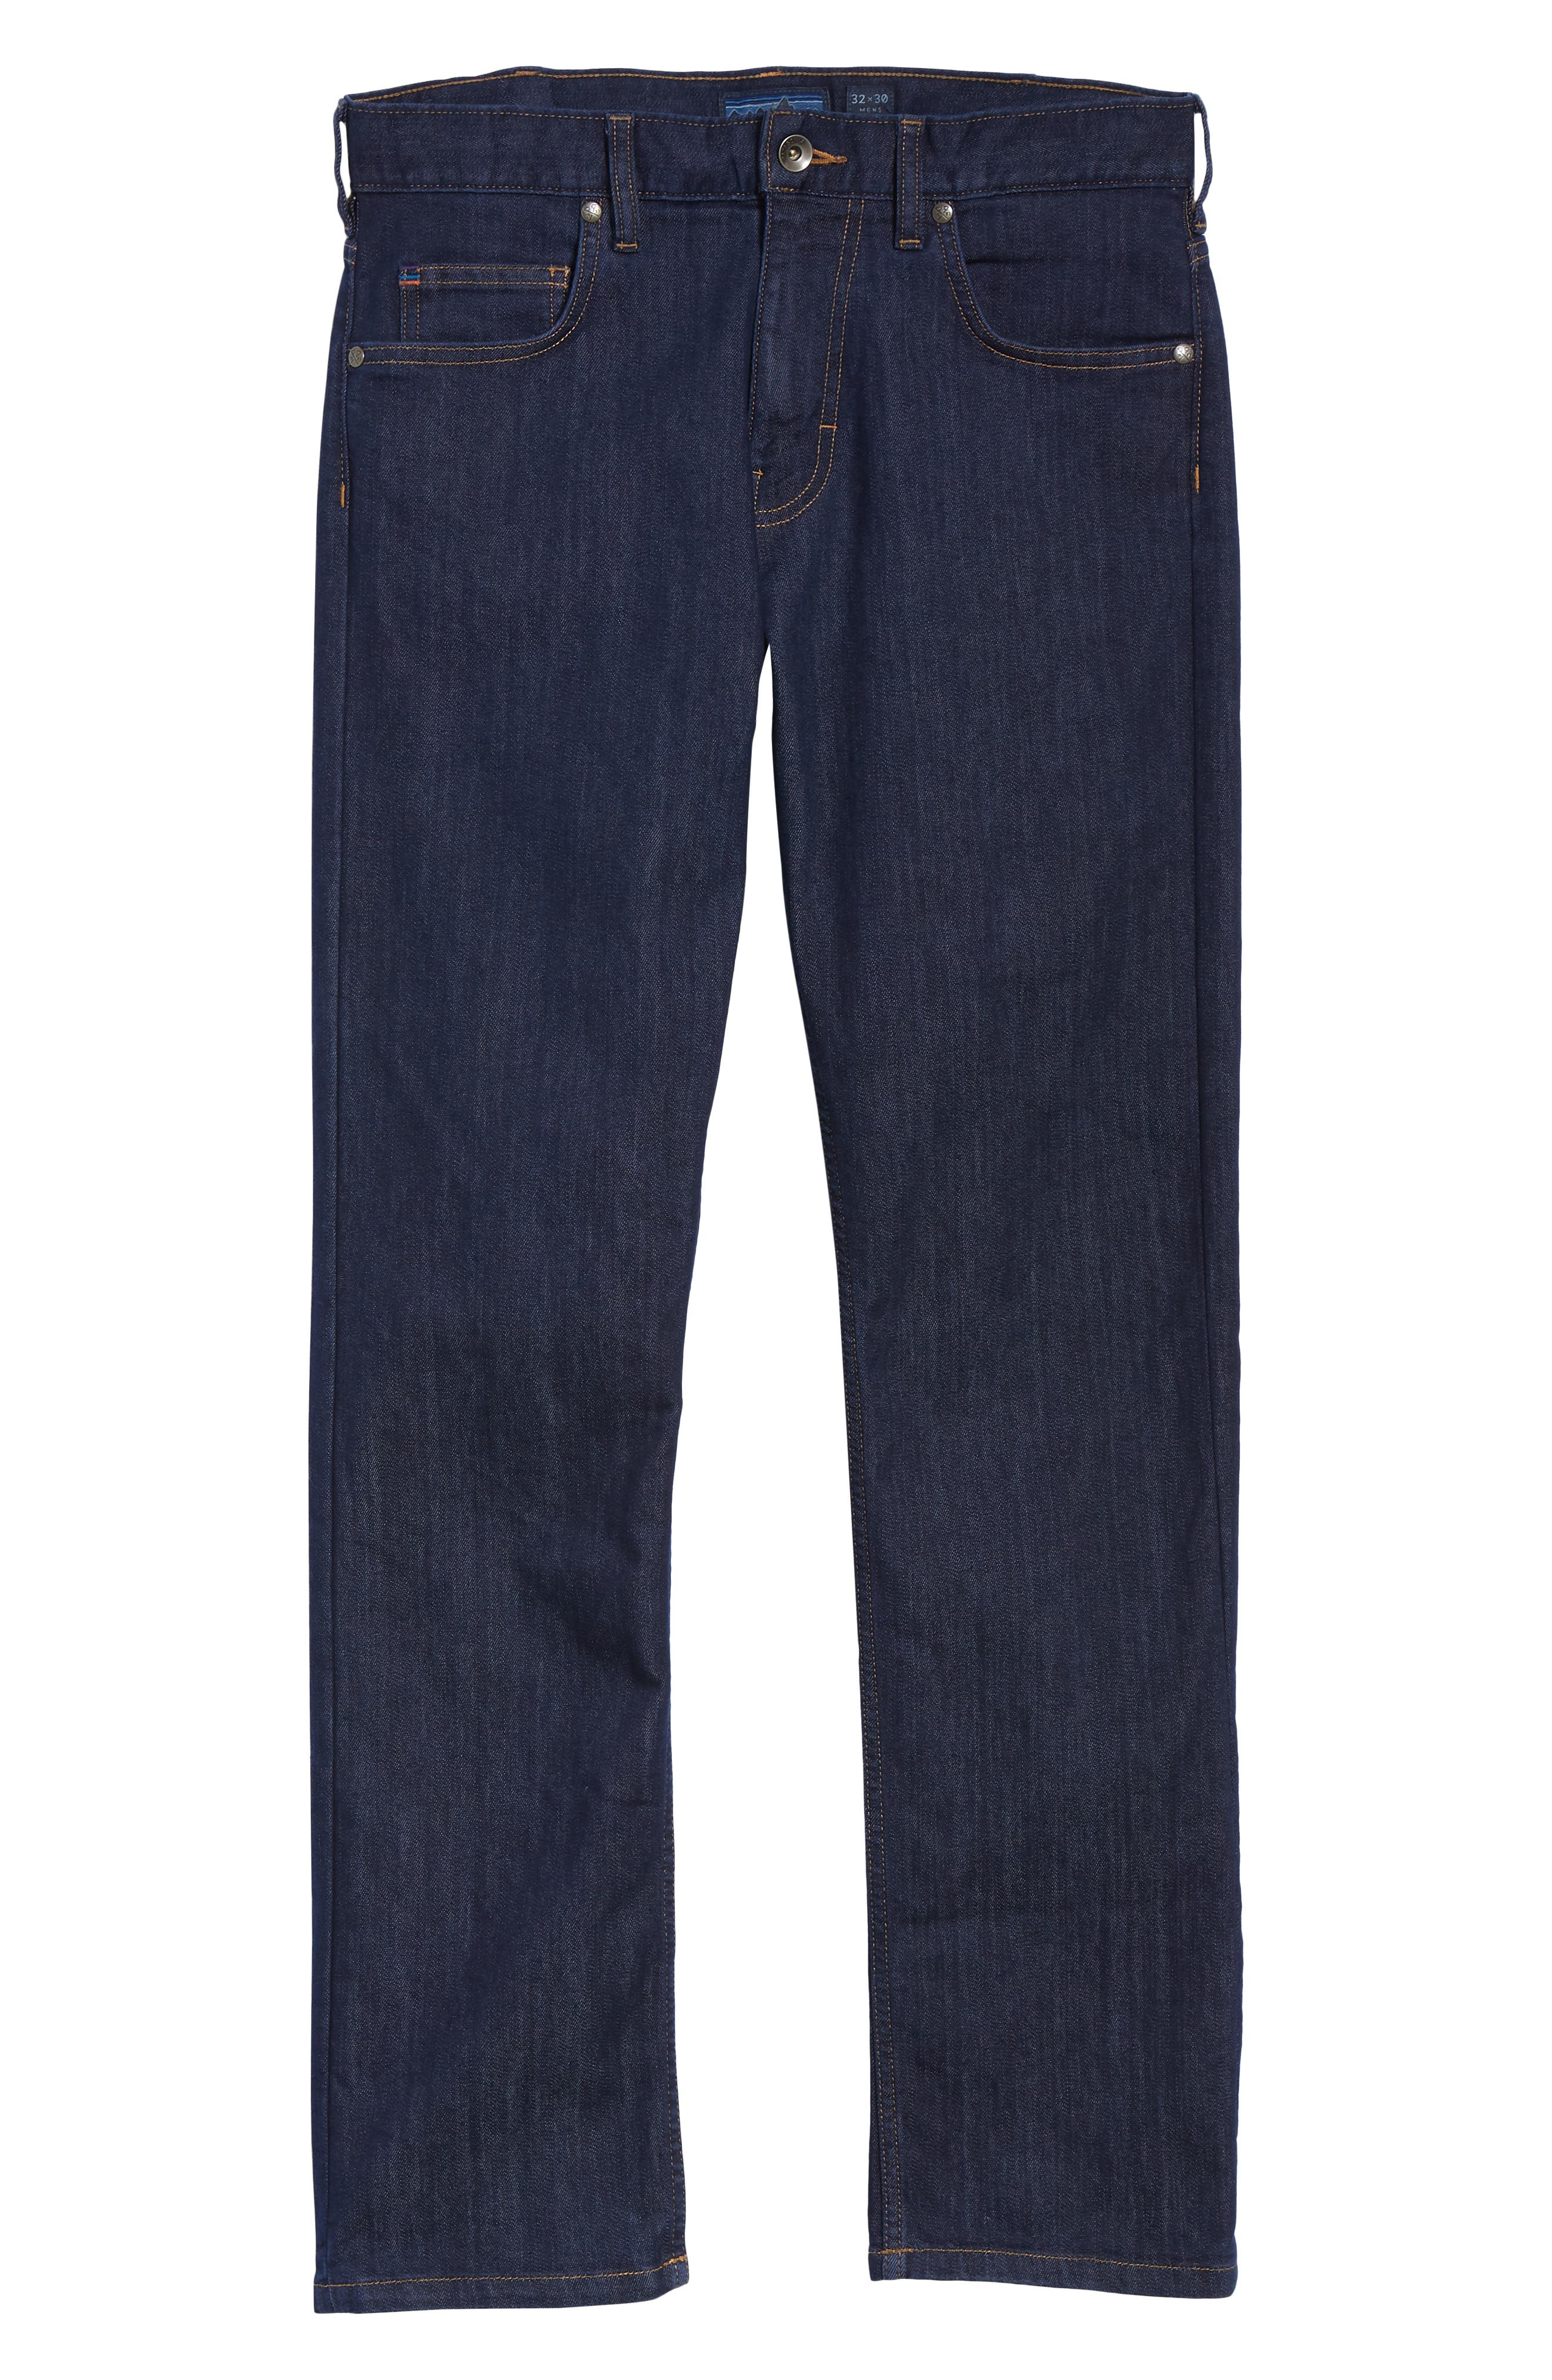 Straight Leg Performance Jeans,                             Alternate thumbnail 6, color,                             DARK DENIM